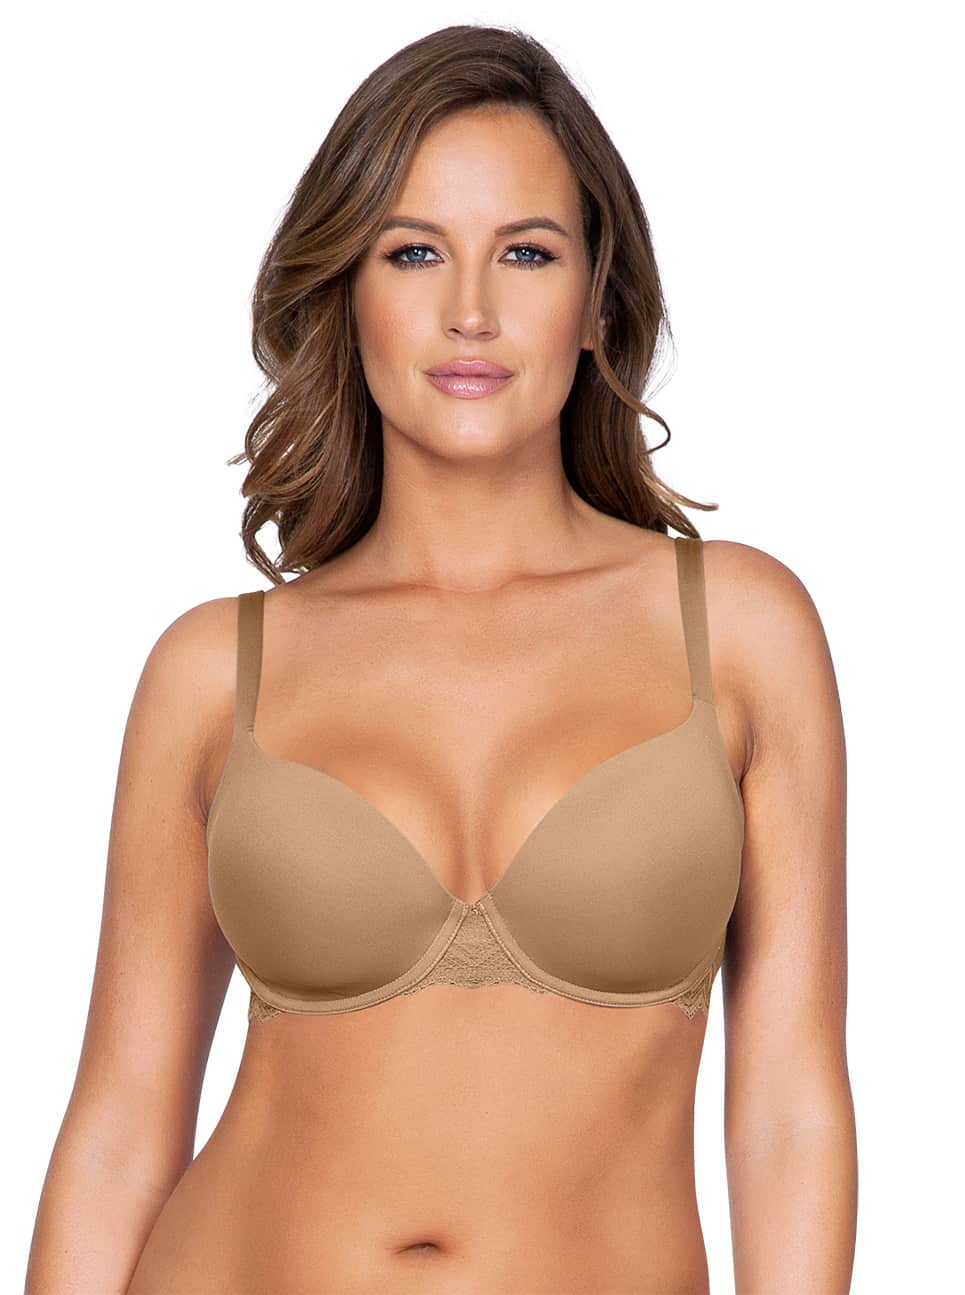 Extra Large Nipple Covers